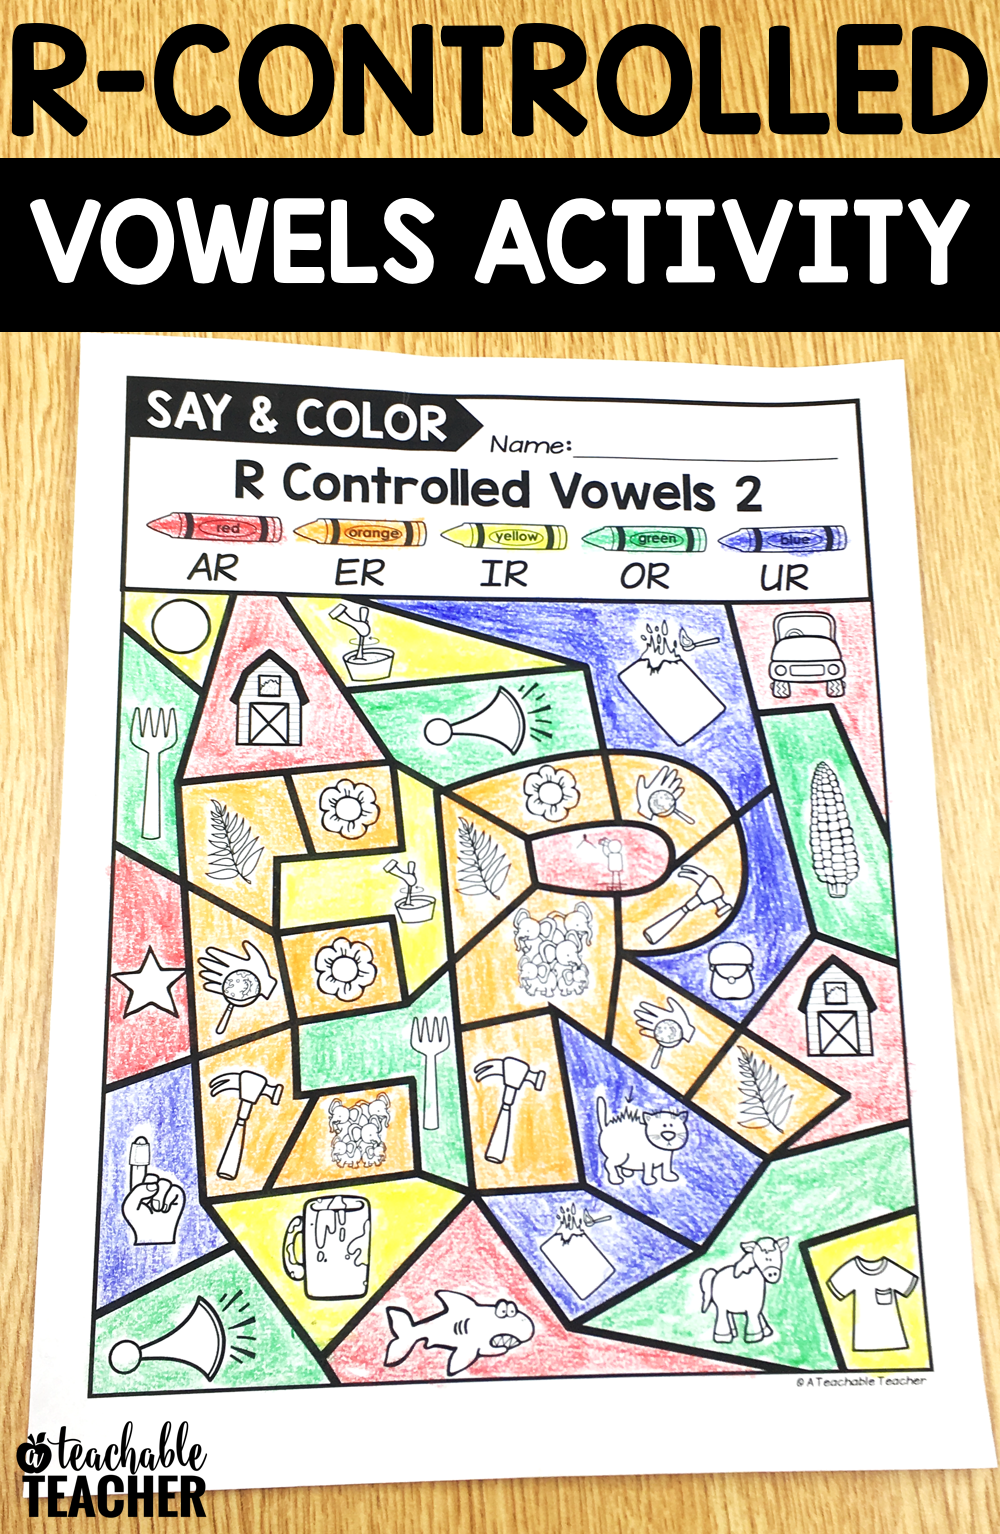 small resolution of R-controlled vowels worksheets. Say and Color r-controlled vowels  printables incorpora…   Vowel activities